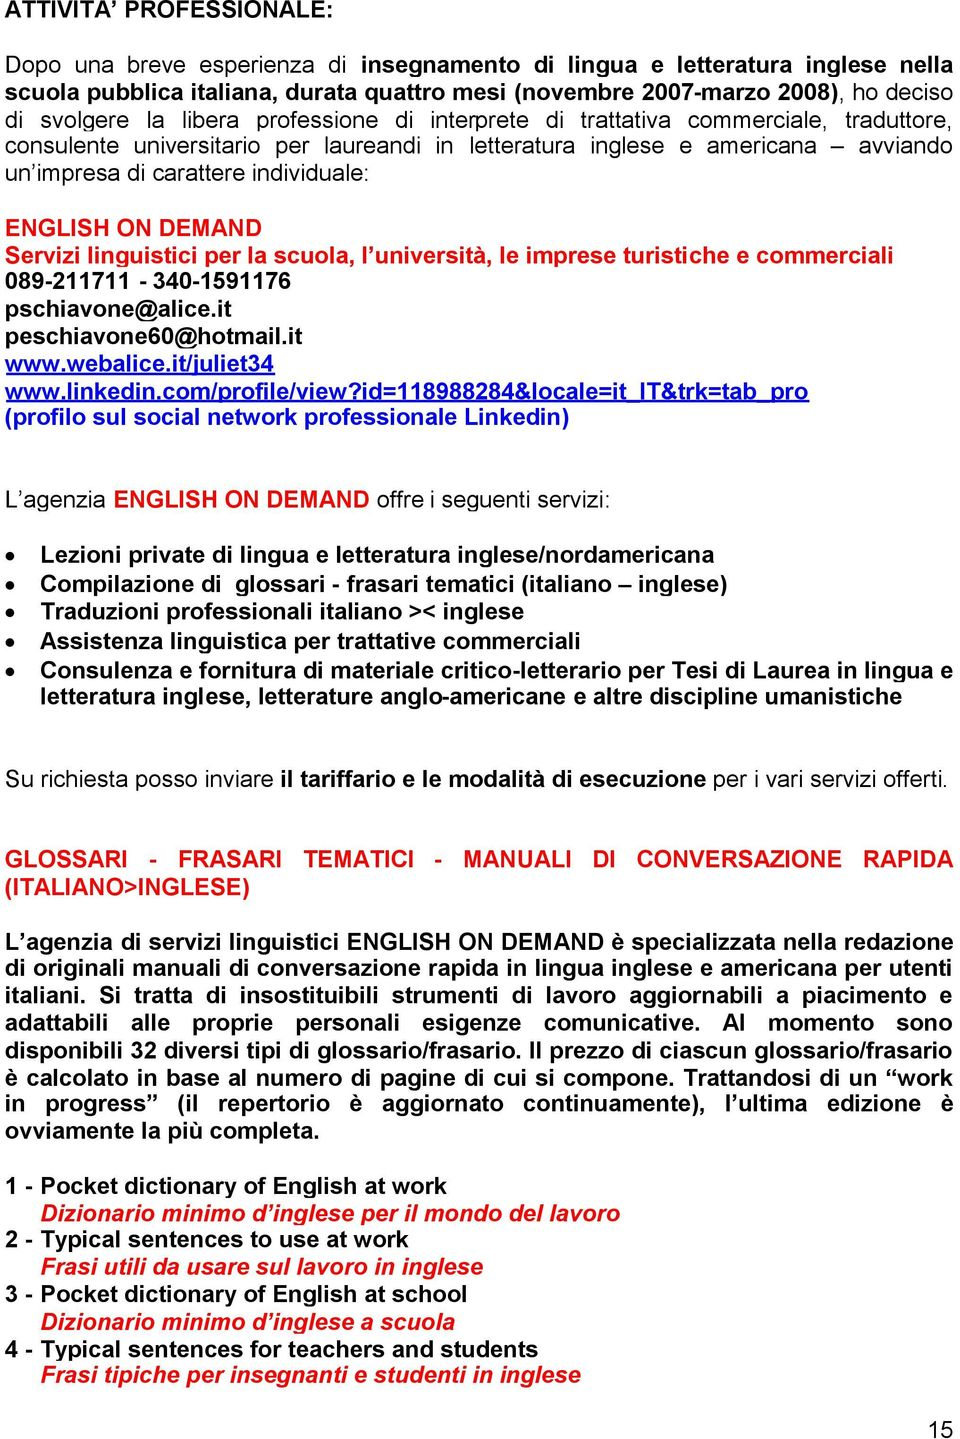 ENGLISH ON DEMAND Servizi linguistici per la scuola, l università, le imprese turistiche e commerciali 089-211711 - 340-1591176 pschiavone@alice.it peschiavone60@hotmail.it www.webalice.